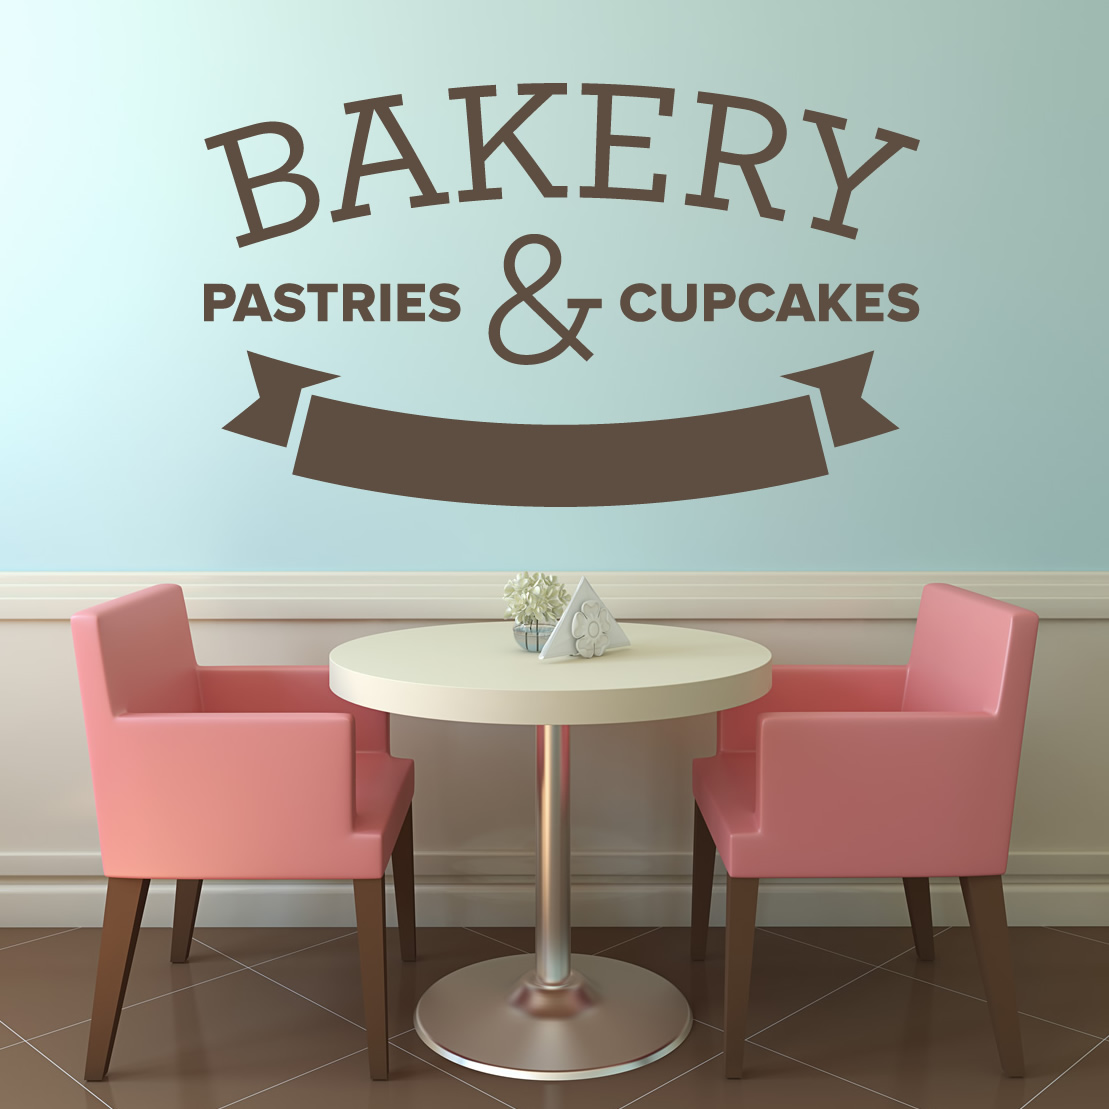 Bakery Patries And Cupcakes Cafe Kitchen Wall Art Decal